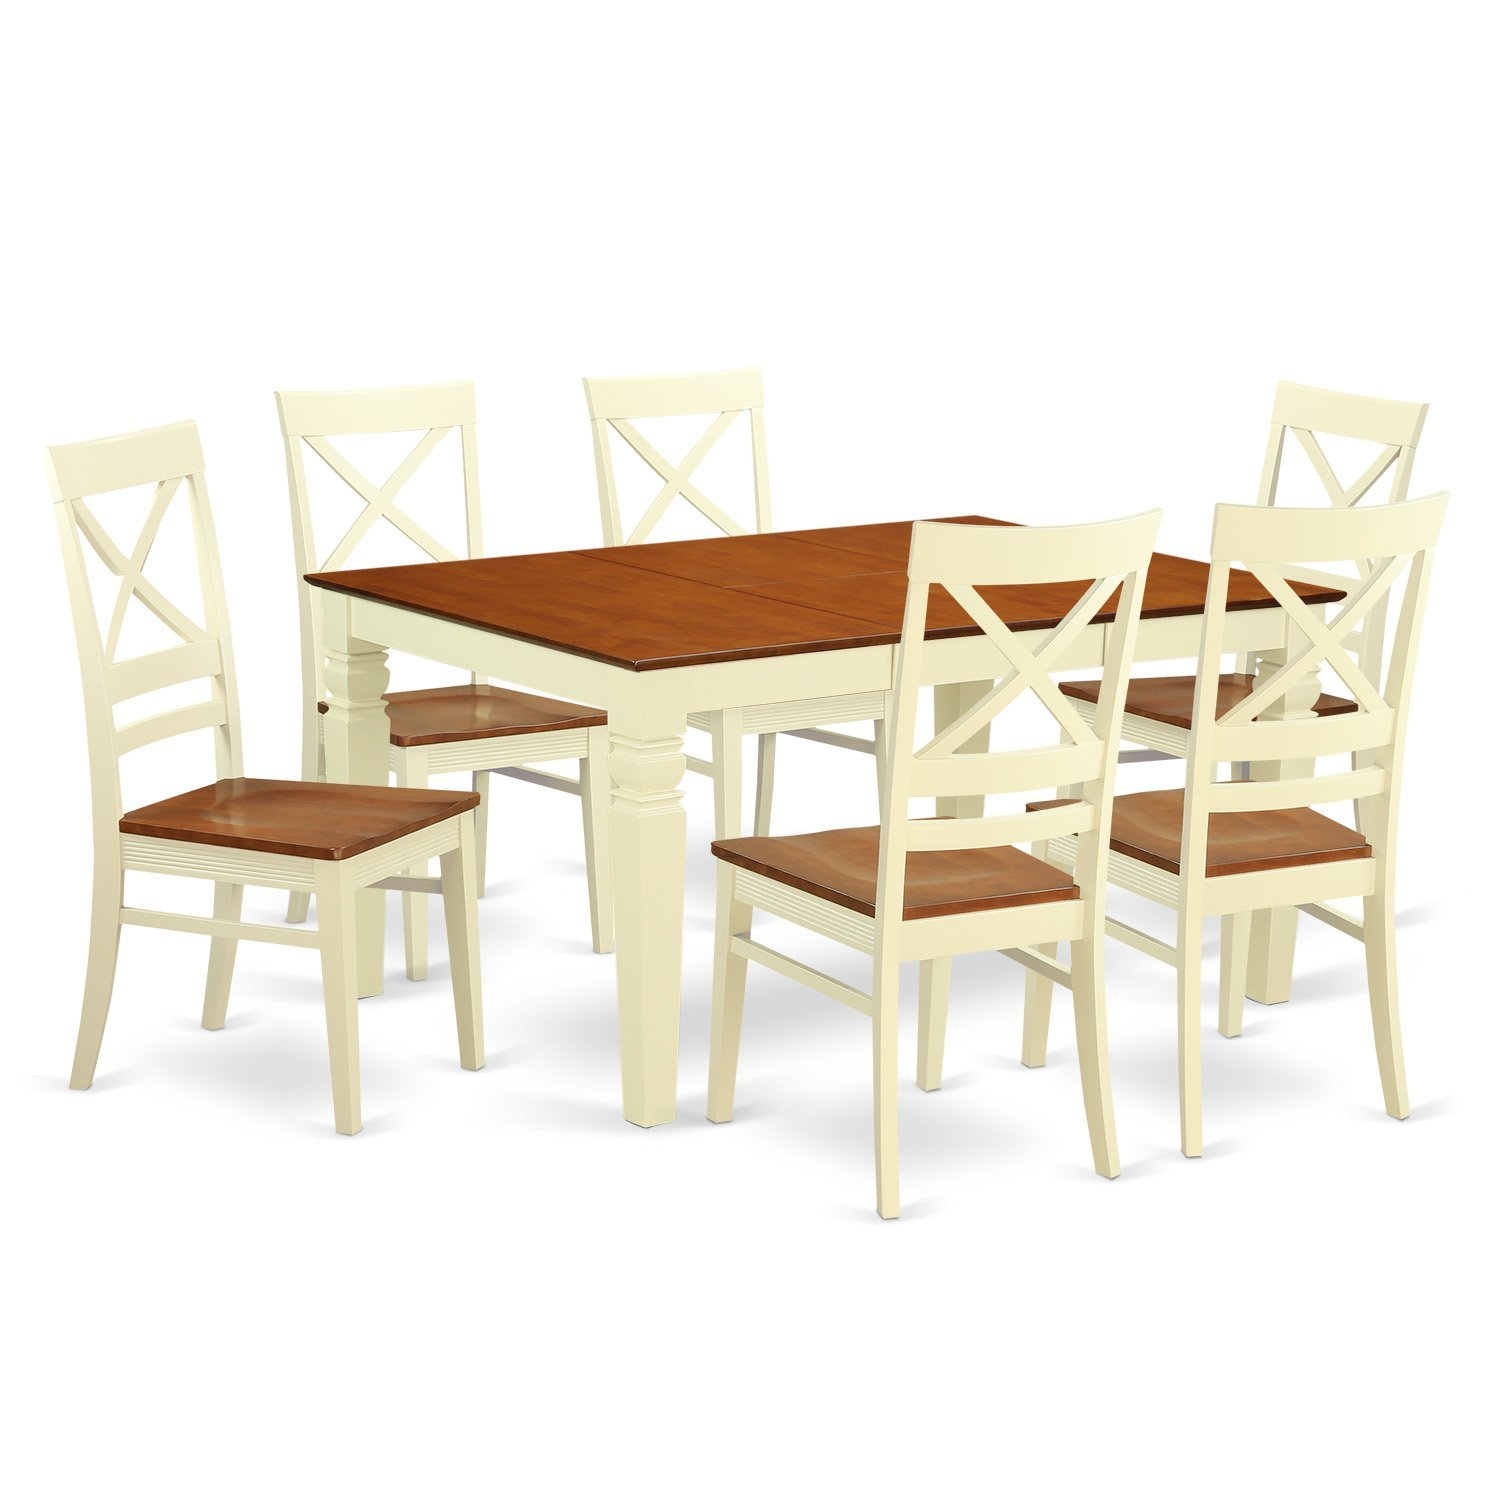 East West Furniture Weston WEQU7-BMK-W 7 Pc Kitchen Set With a Dinning Table And 6 Wood Dining Chairs, Buttermilk and Cherry